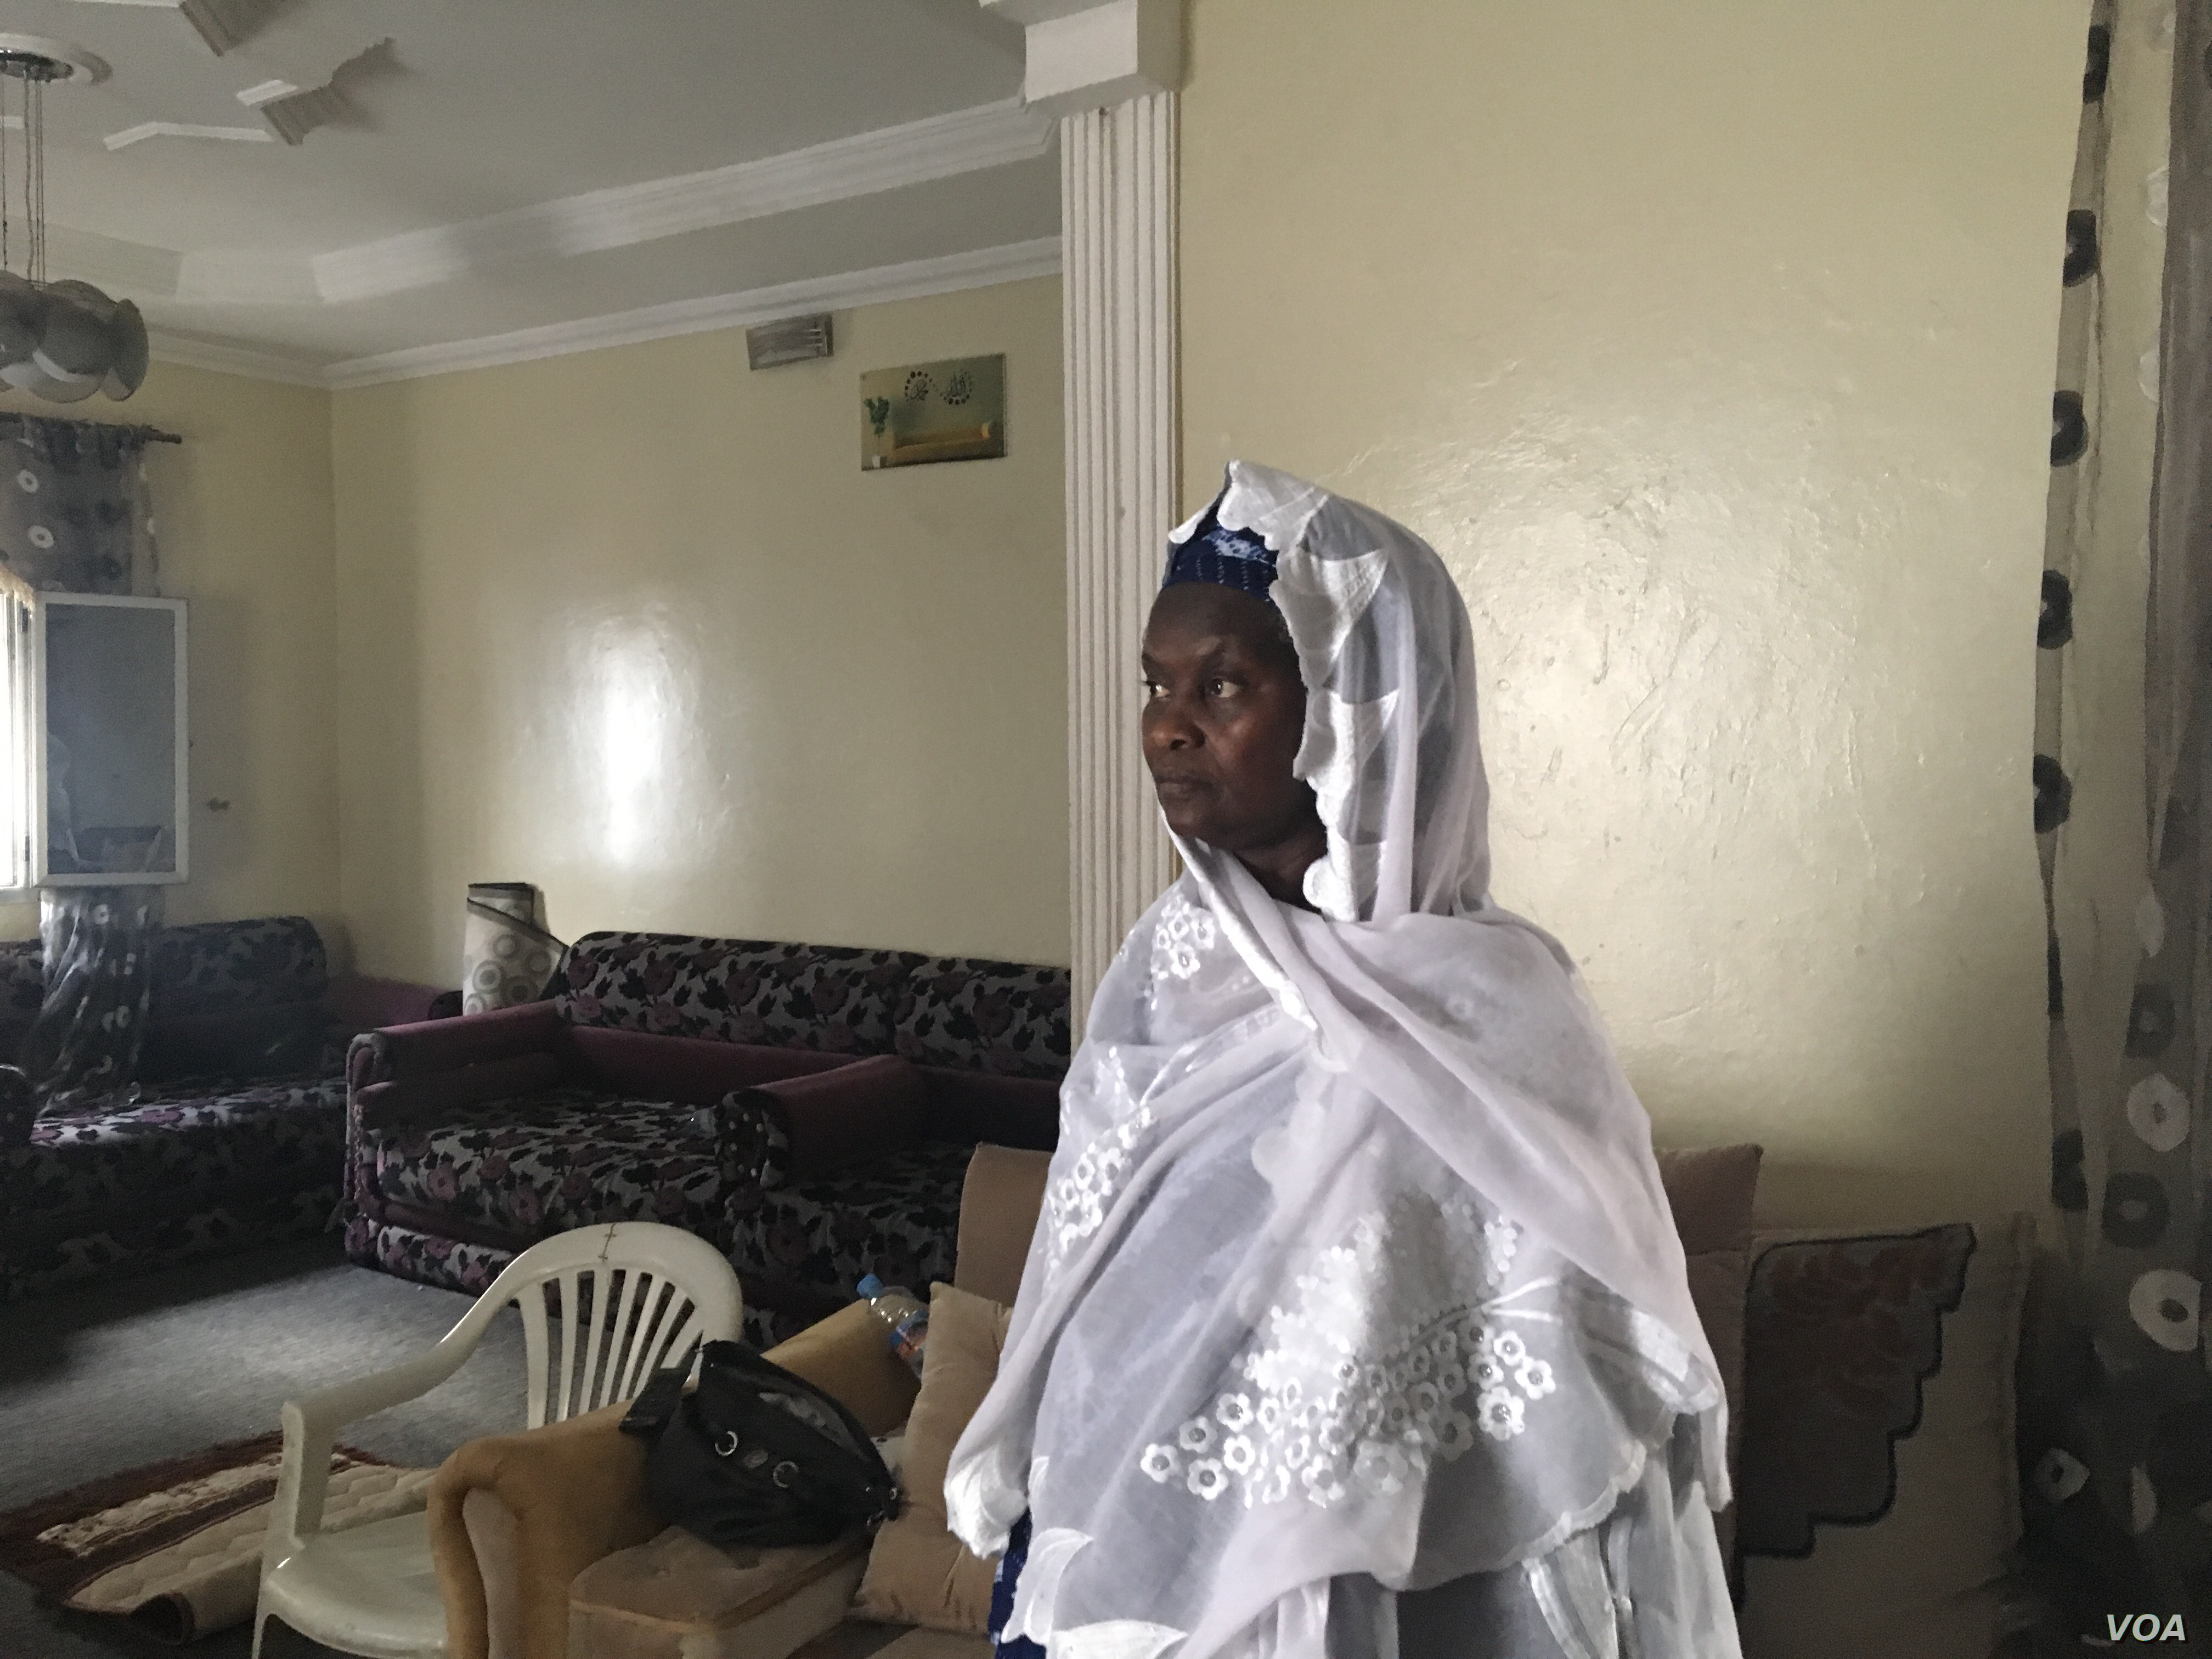 Fatimata M'Baye, Mkahitir's lawyer, says she has not been allowed to speak with her client. (E. Sarai/VOA)